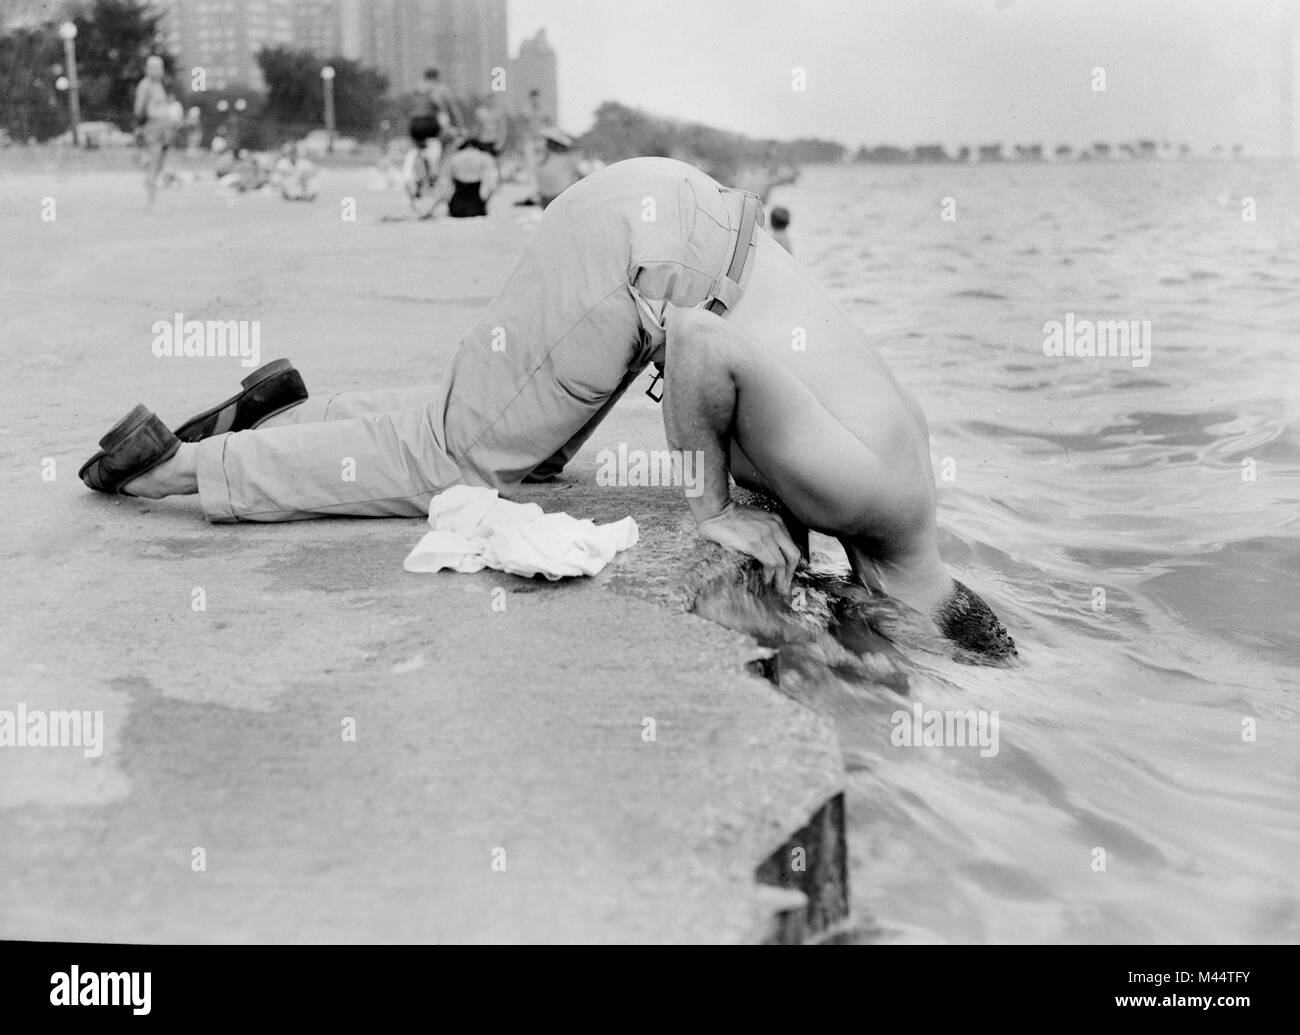 A man cools off along Oak Street beach in Chicago by sticking his head in Lake MIchigan, ca. 1955. - Stock Image